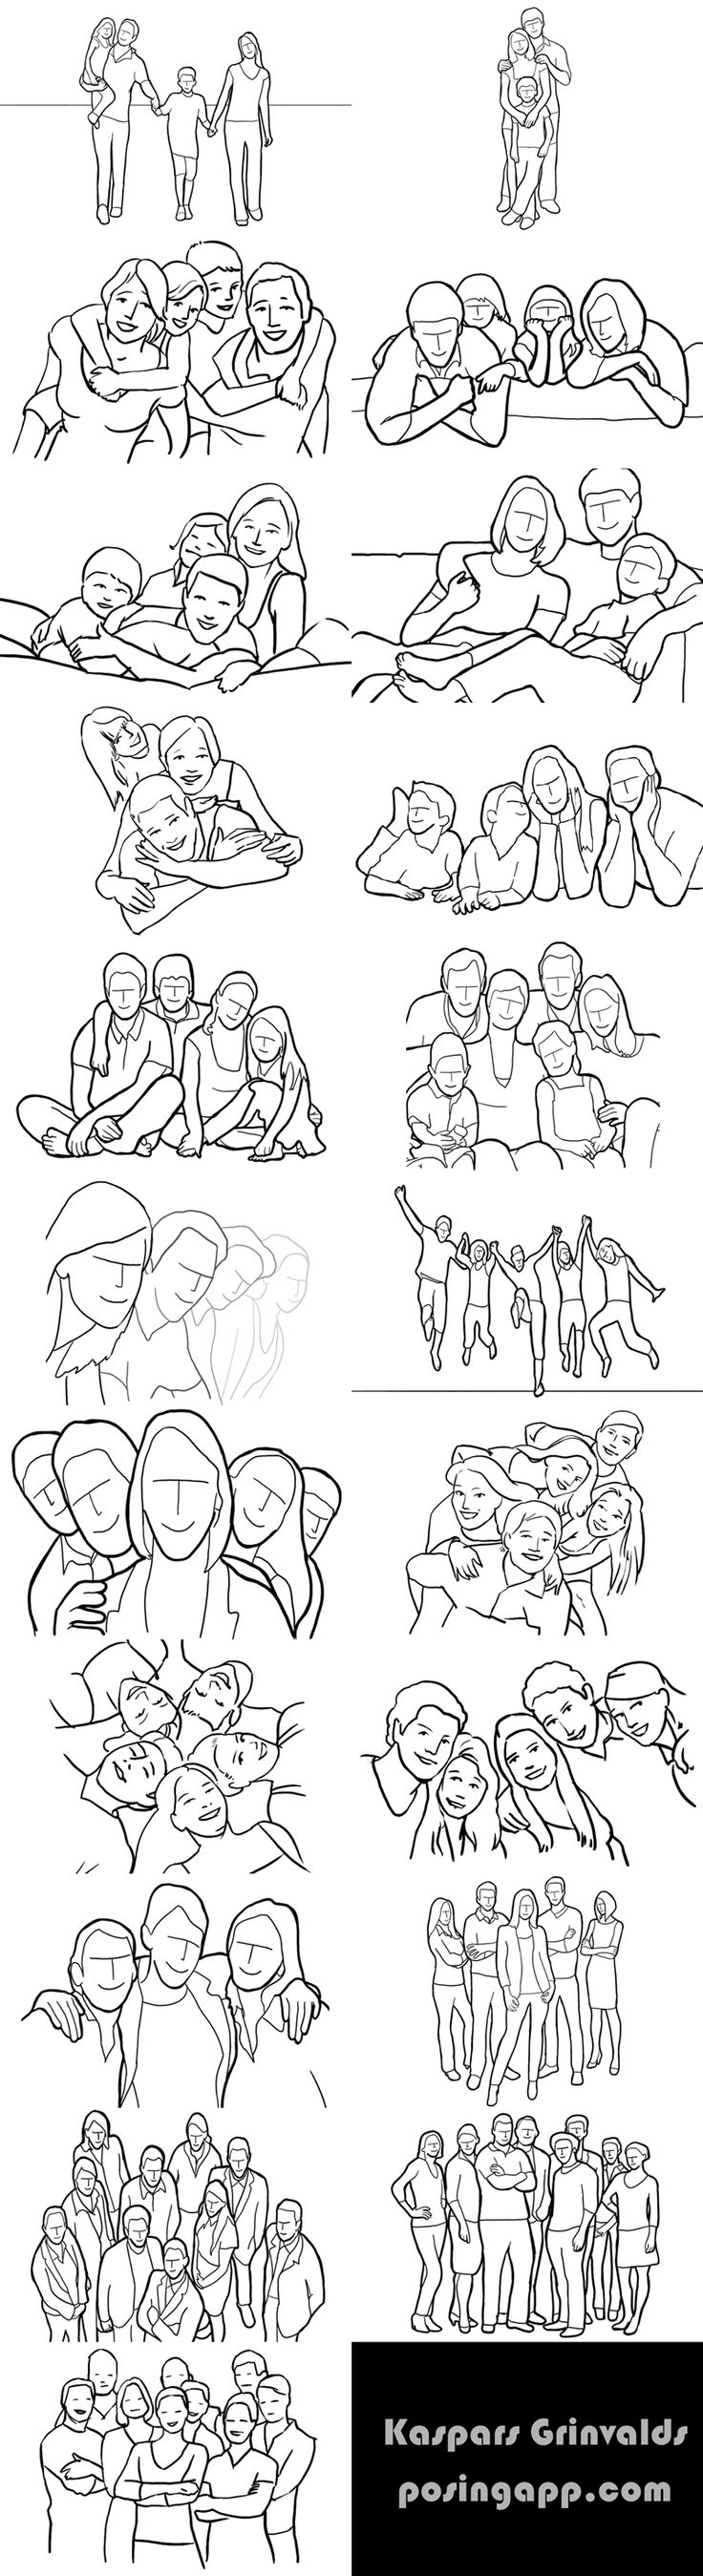 ideas for group poses...